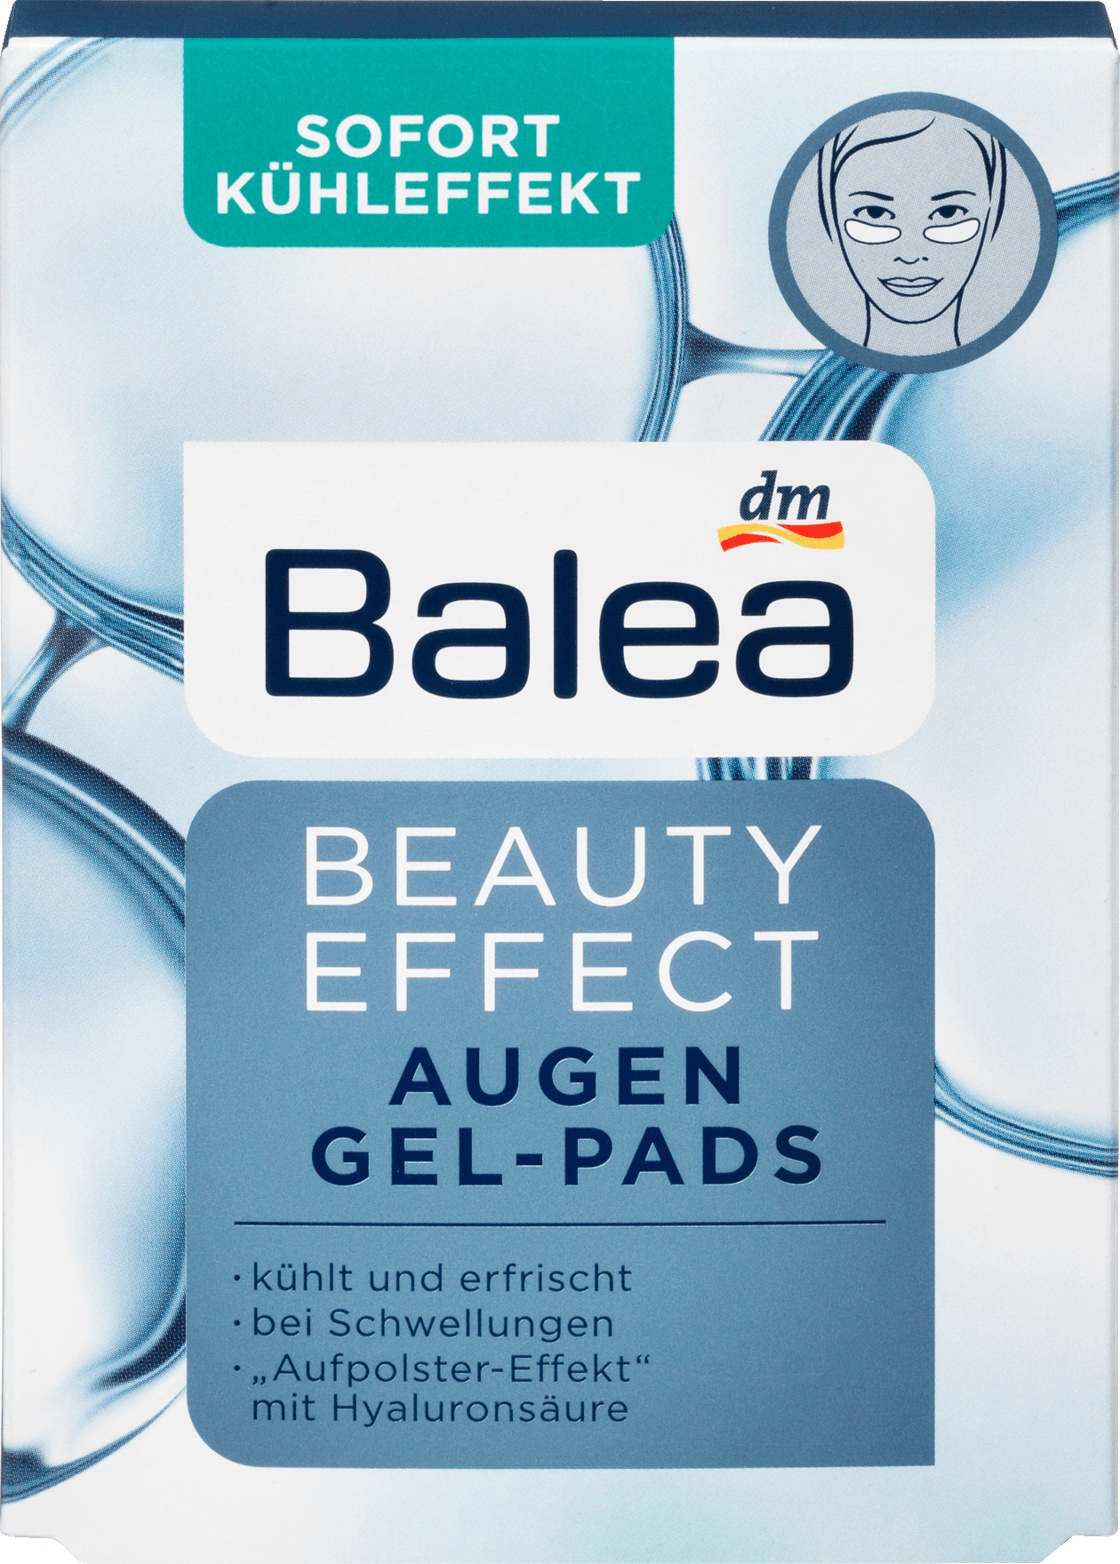 Balea Balla Augenpads Beauty Effect Gel-Pads